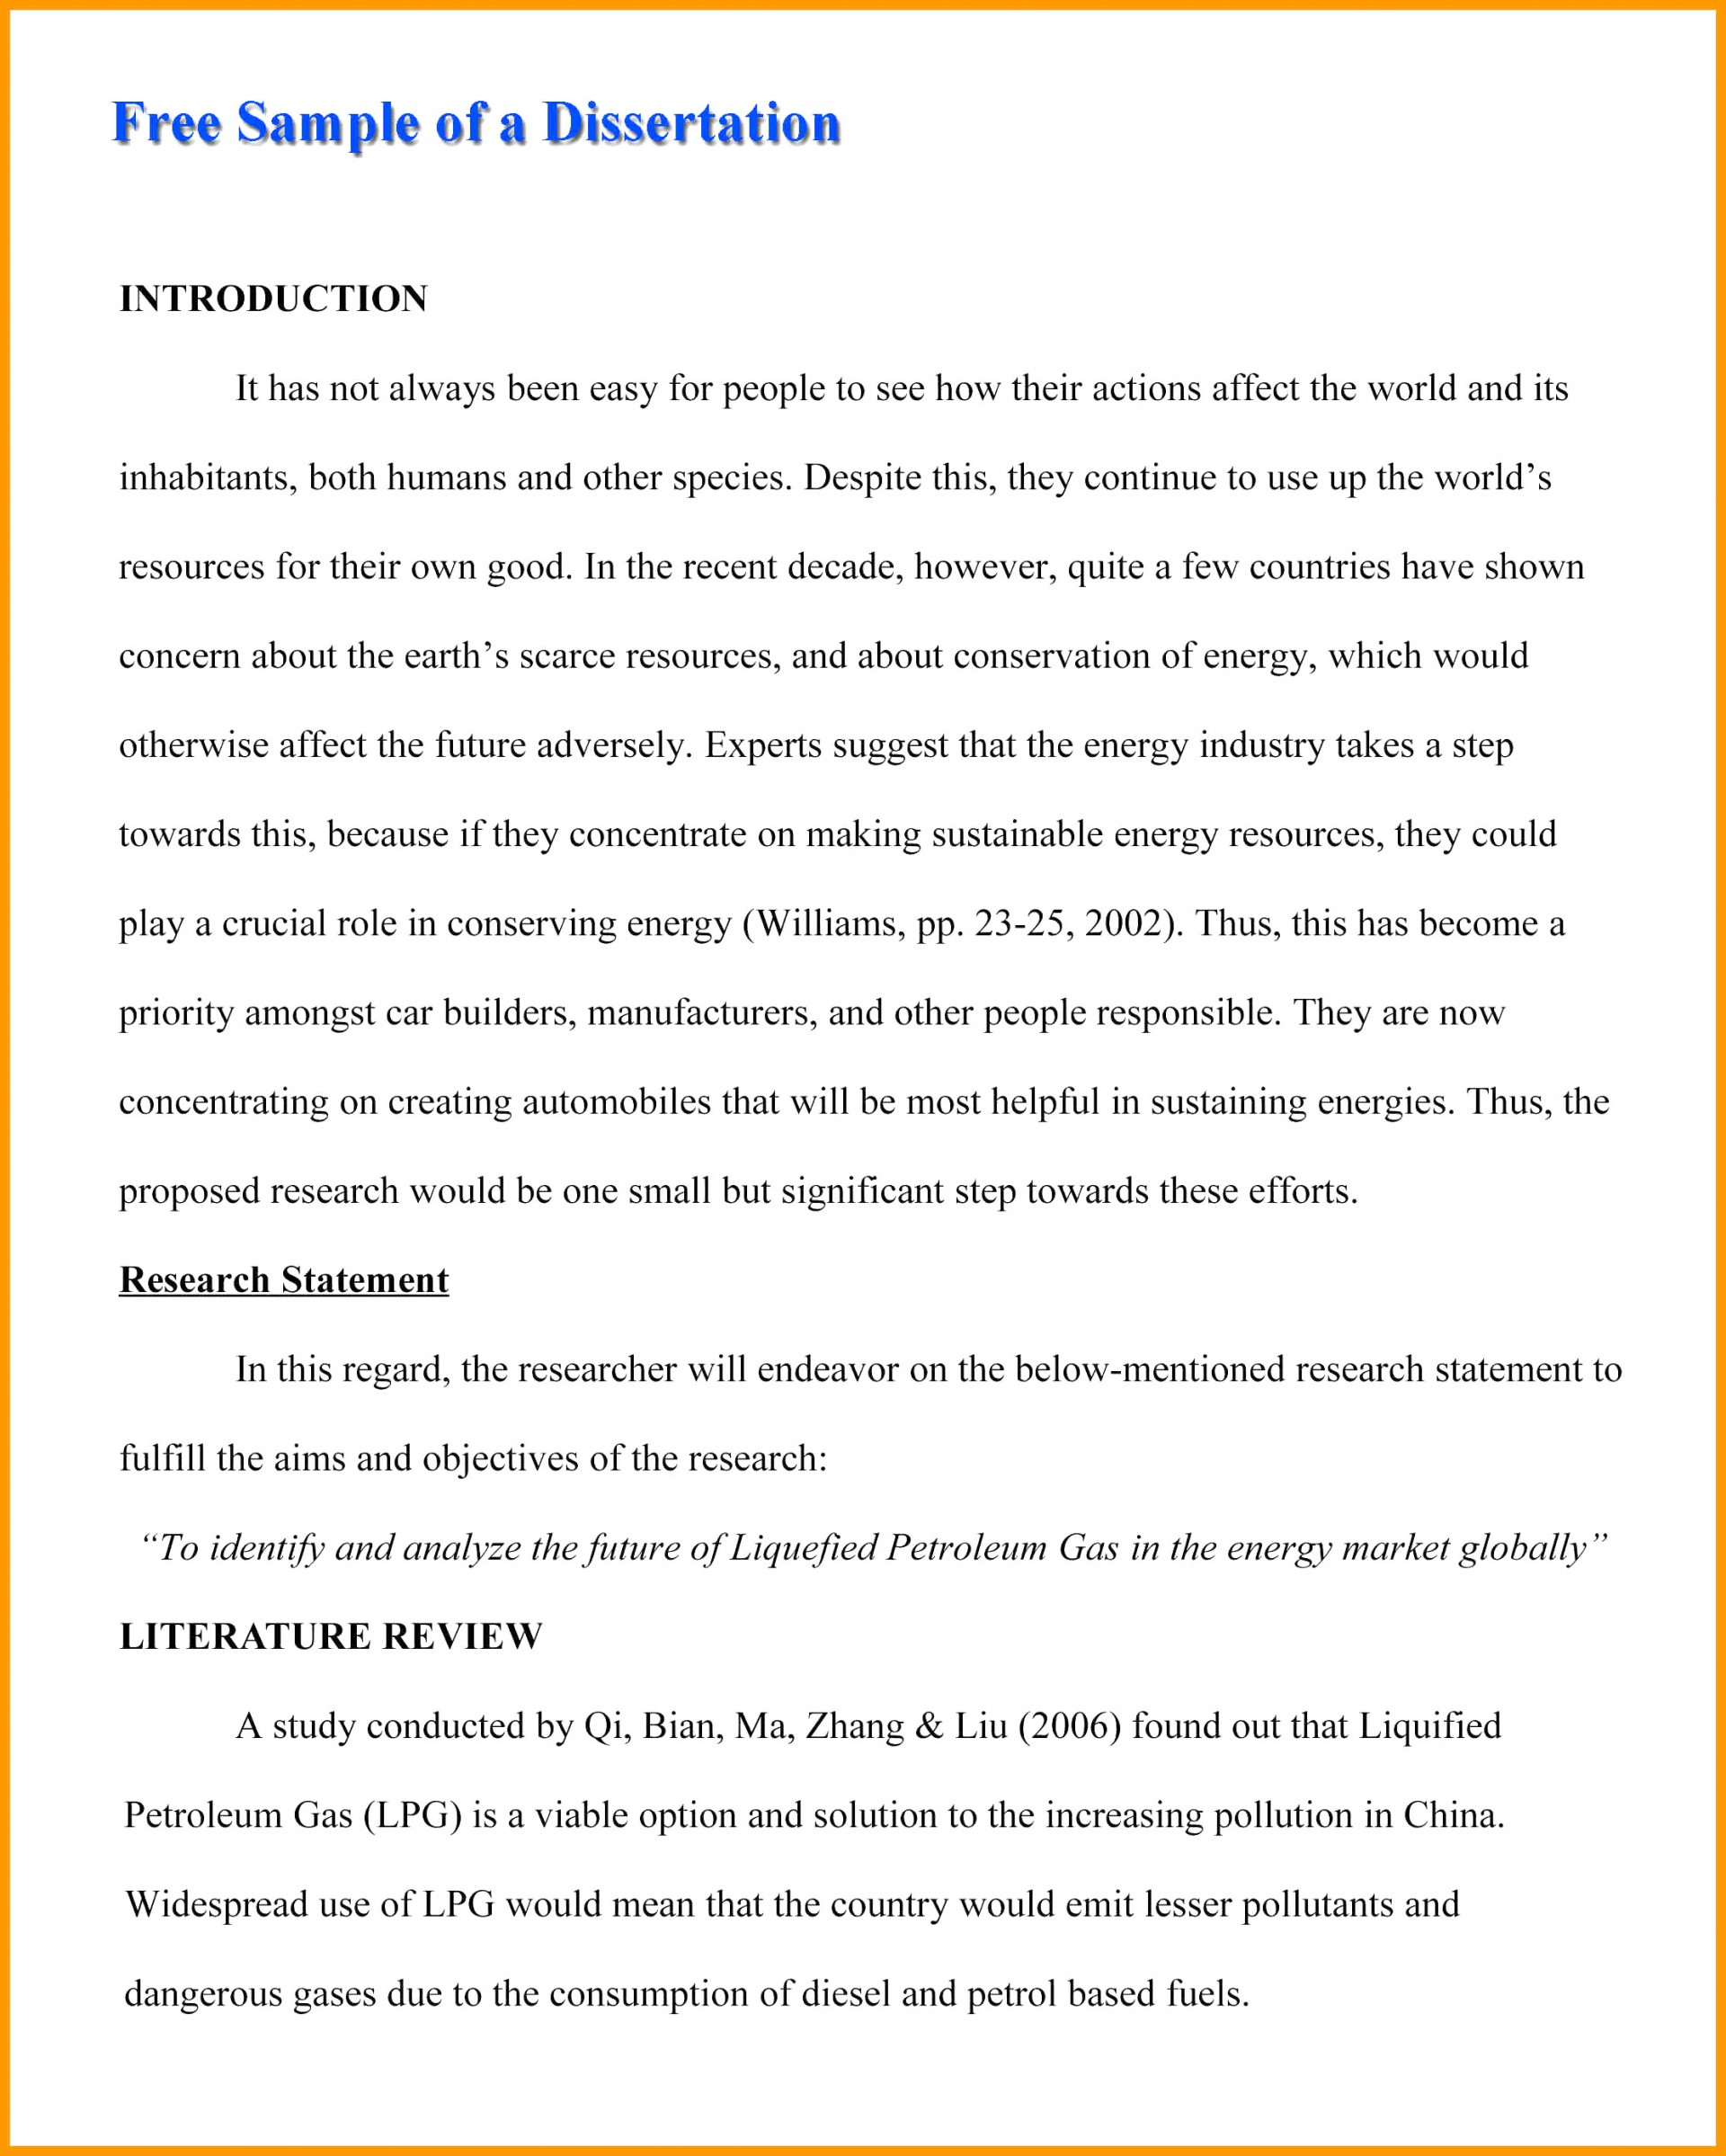 006 War On Drugs Research Paper Outline Best Apa Style Sample Format Mla 1920